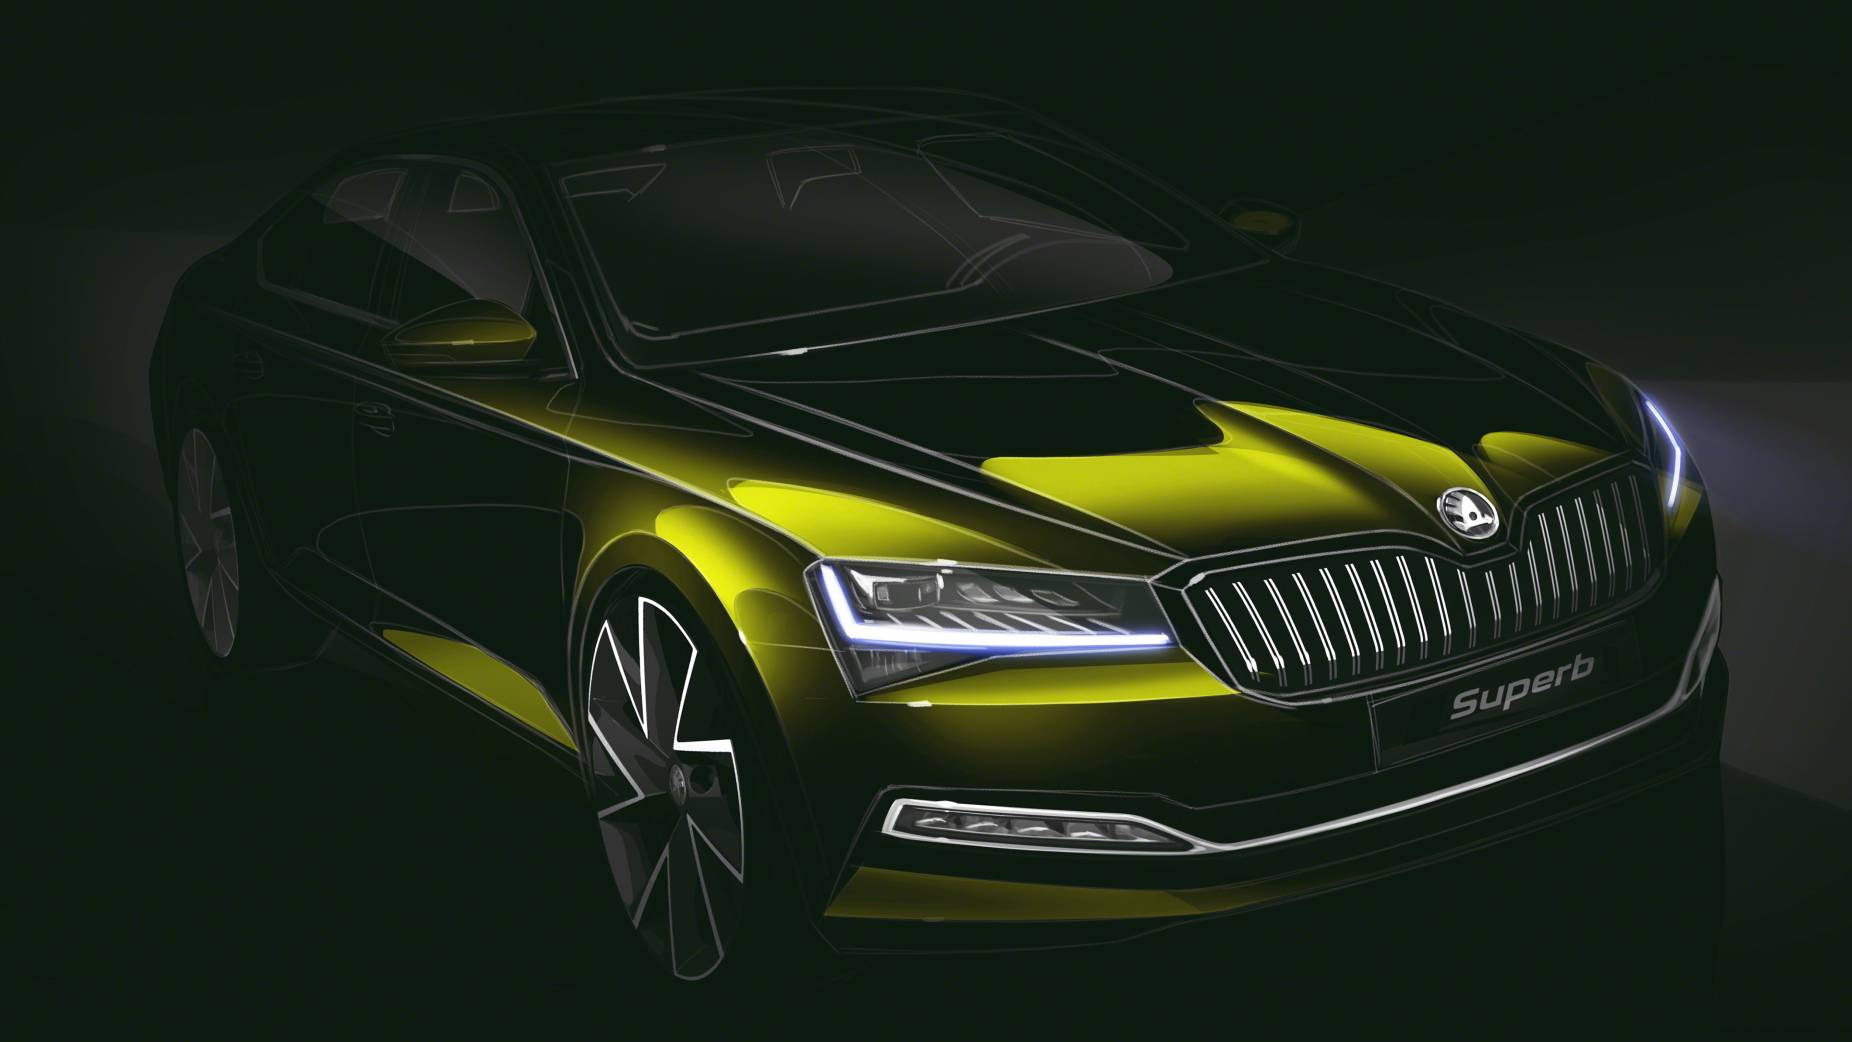 All-new Skoda Superb to debut in 2023, confirms CEO Thomas Schafer